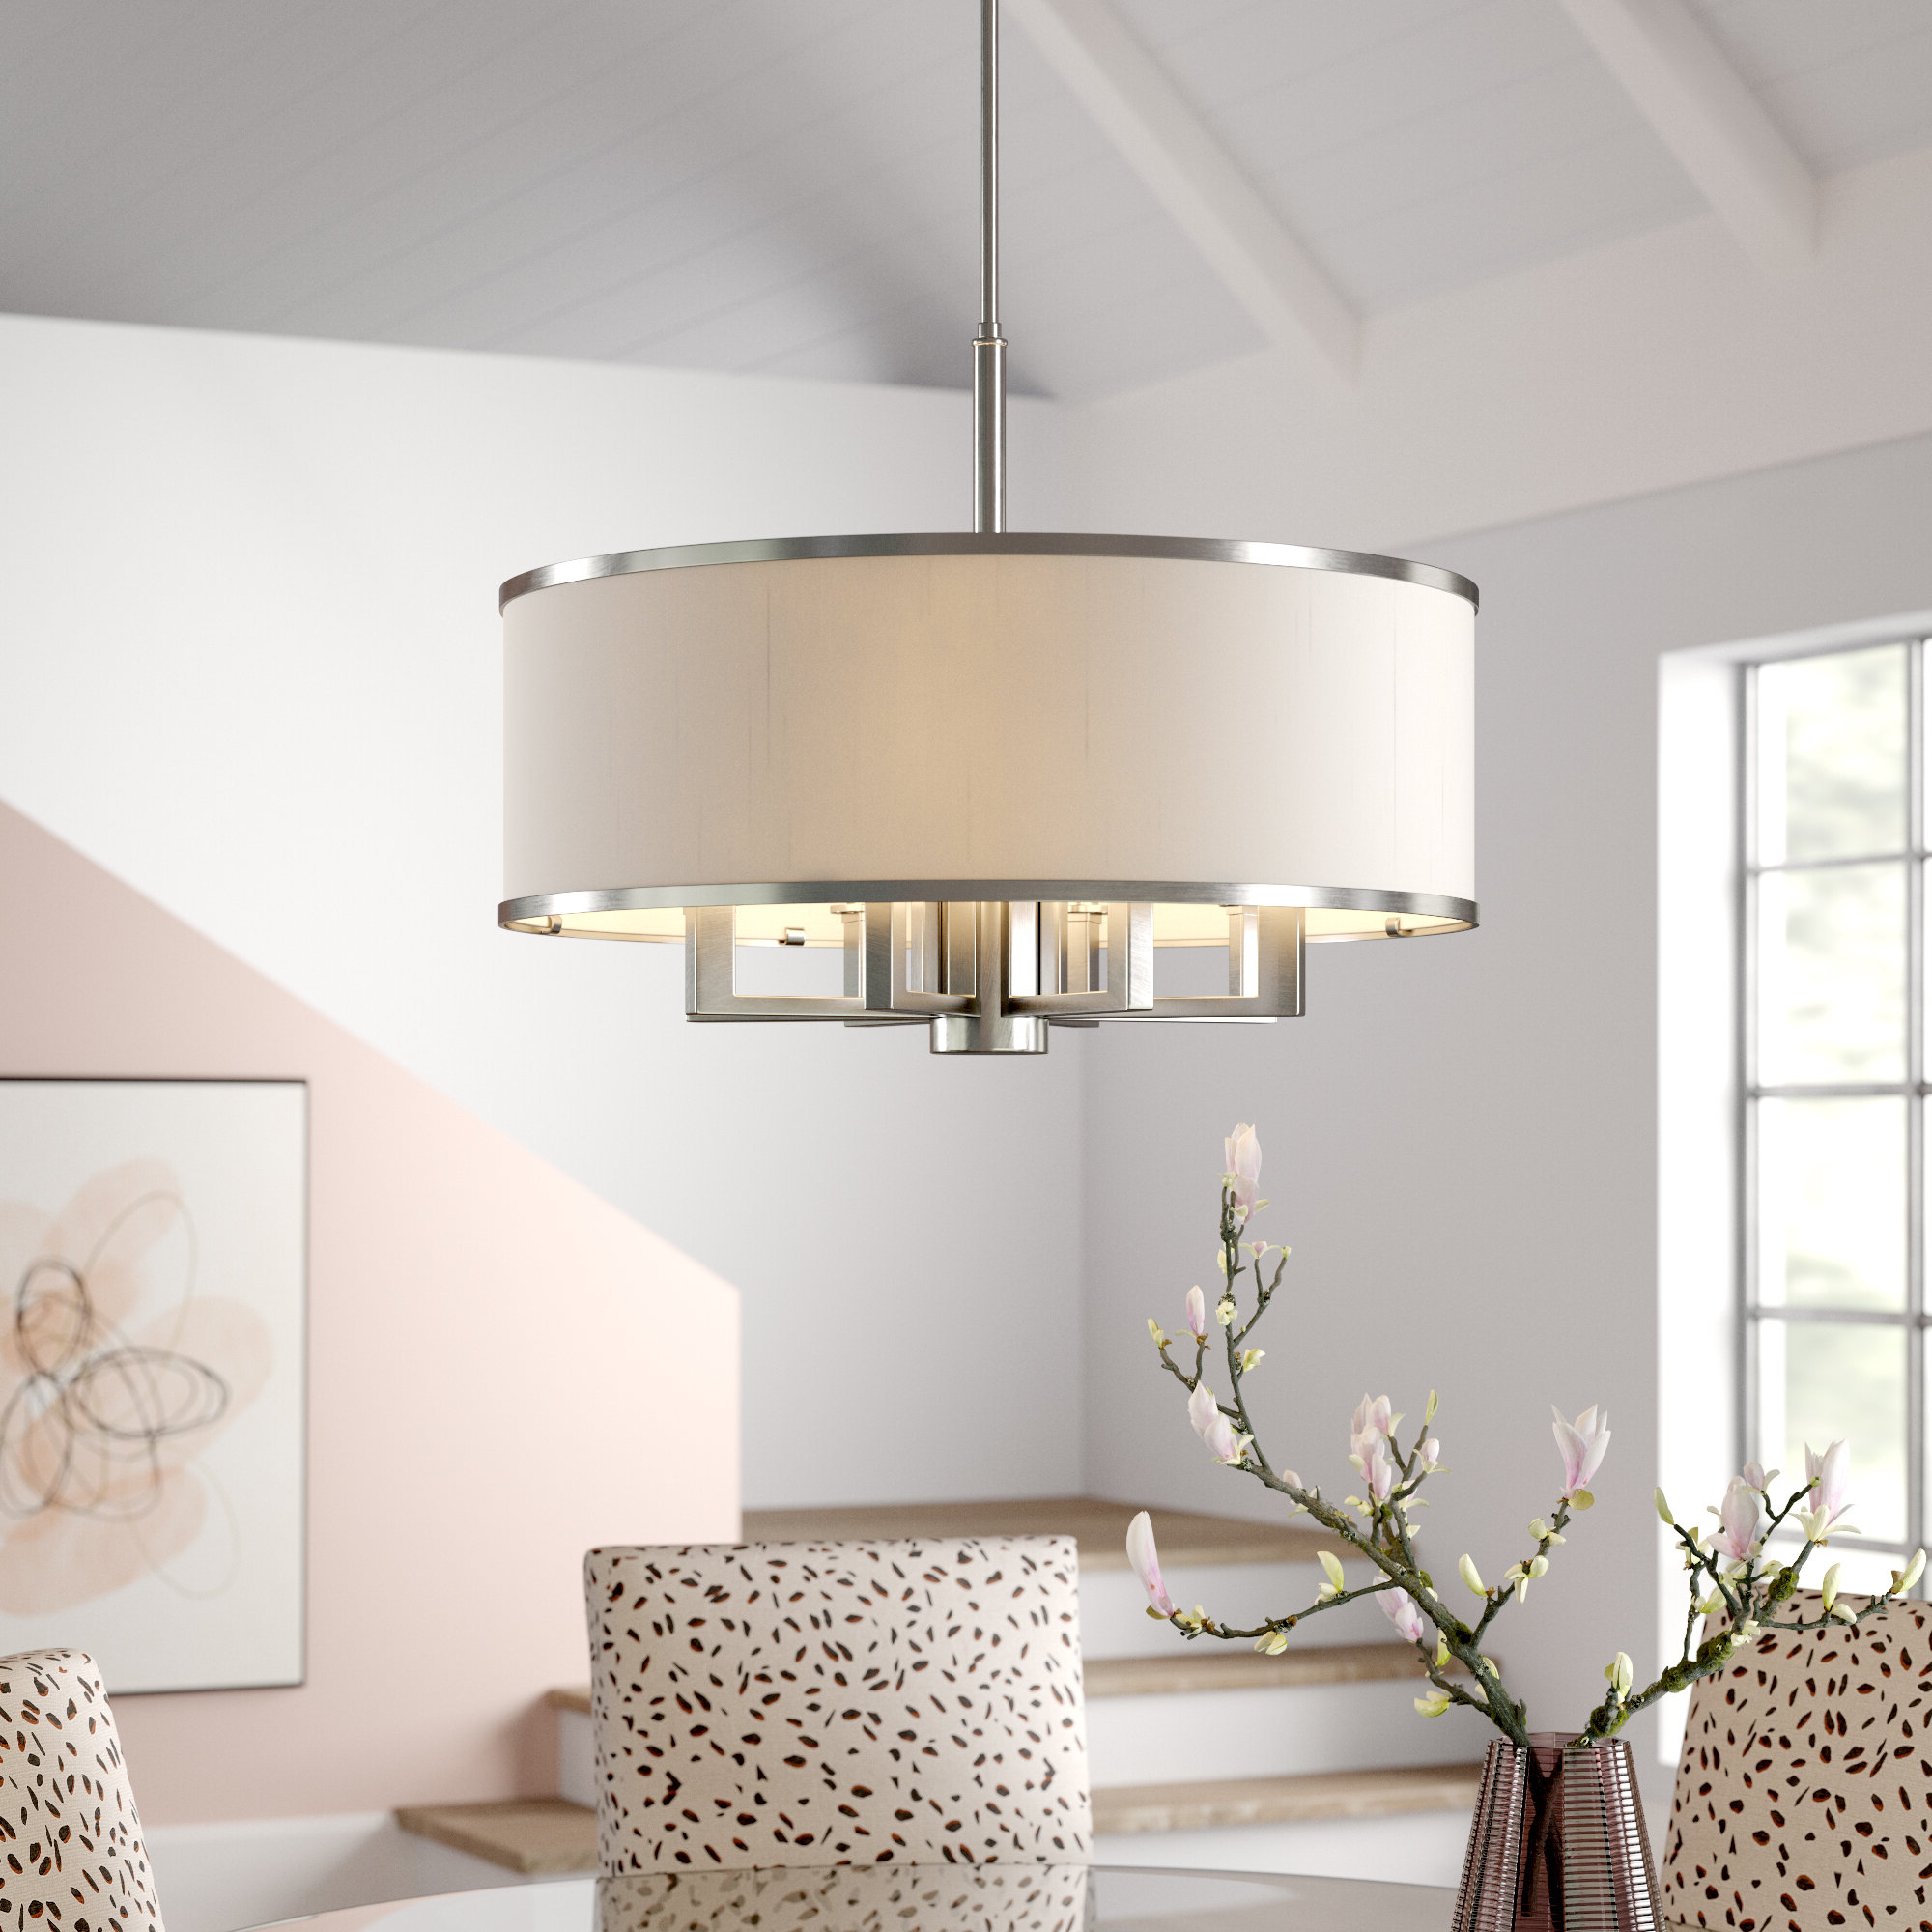 Harlan 5 Light Drum Chandeliers With Regard To Favorite Breithaup 7 Light Drum Chandelier (View 17 of 25)